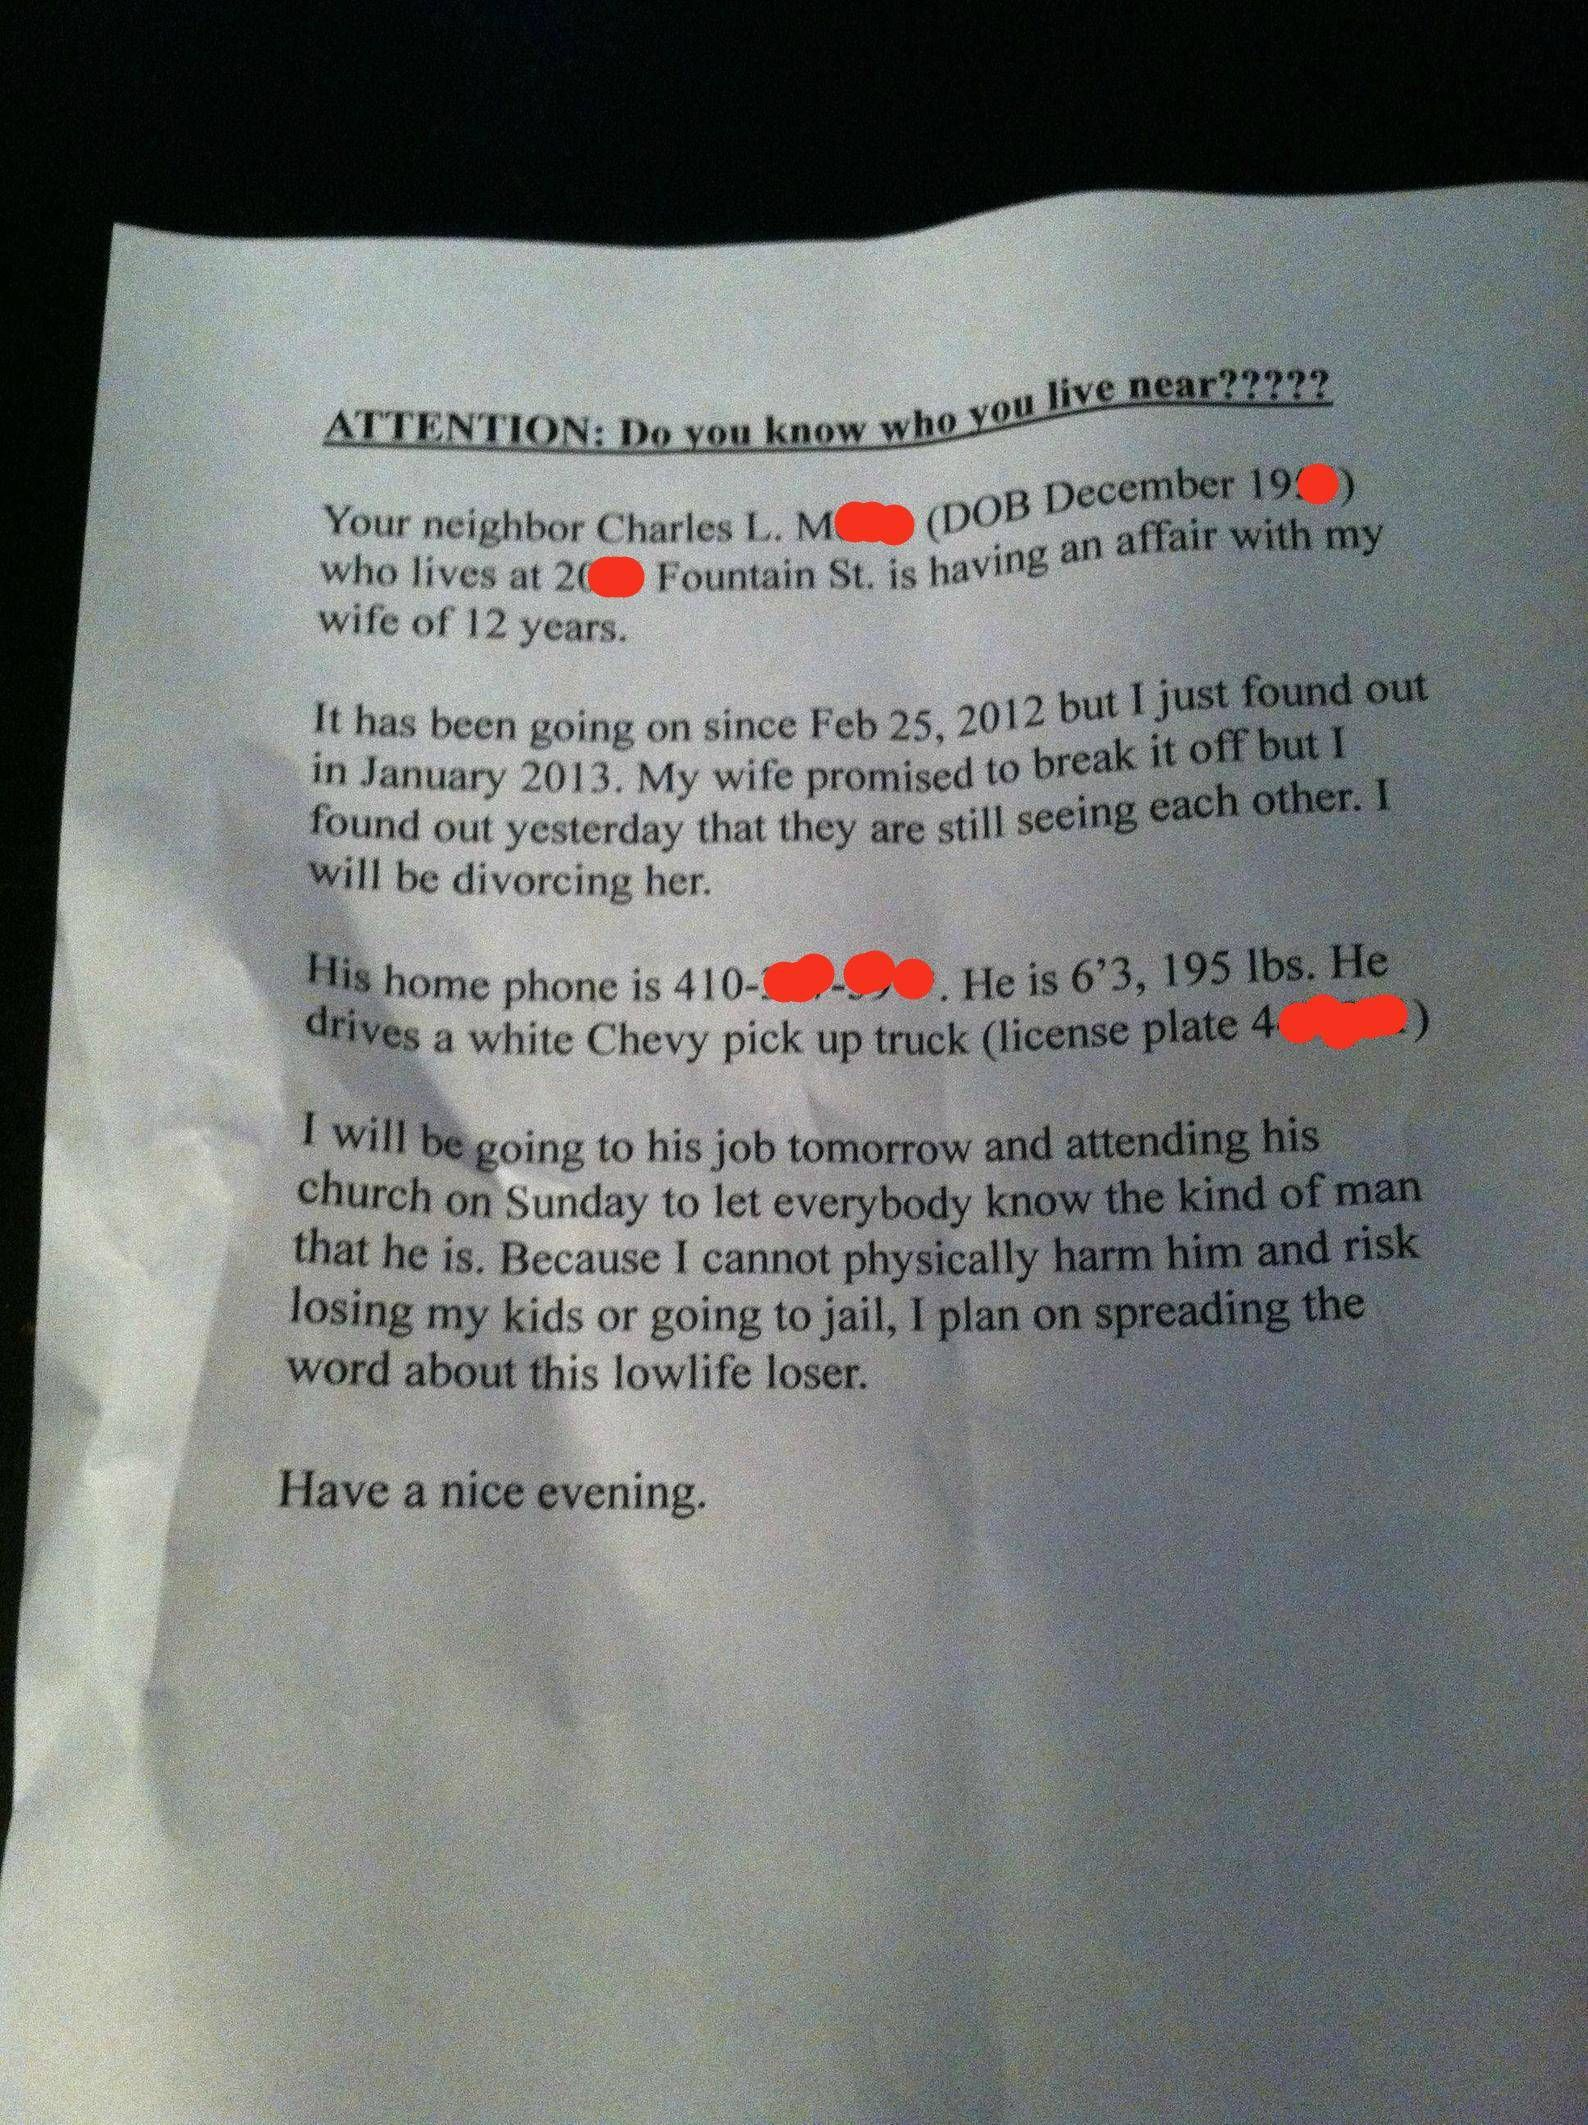 A Husbands Passive Aggressive Note To His Neighbors About His Cheating Wife